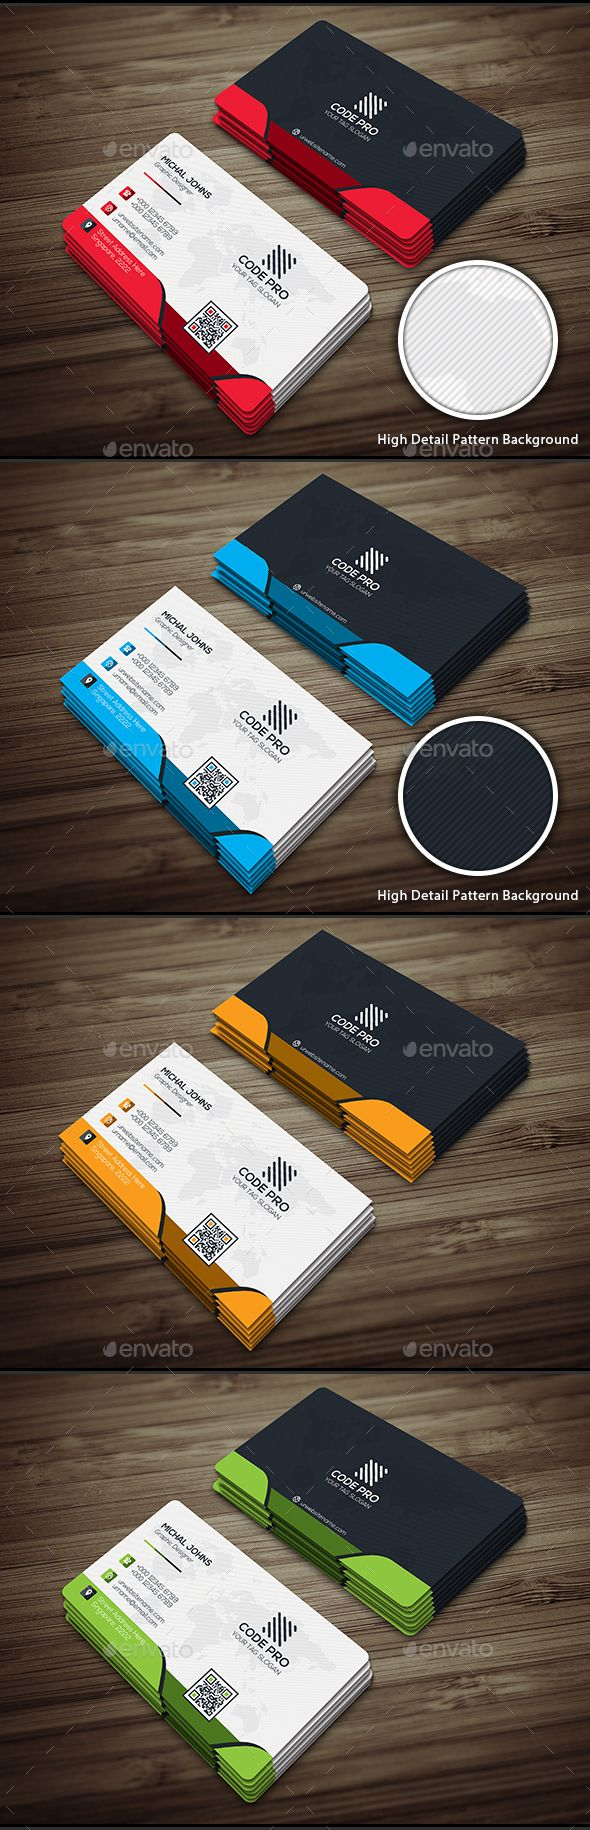 Creative Business Card - #Business Cards Print Templates Download here: https://graphicriver.net/item/creative-business-card/17209759?reff=classicdesignp